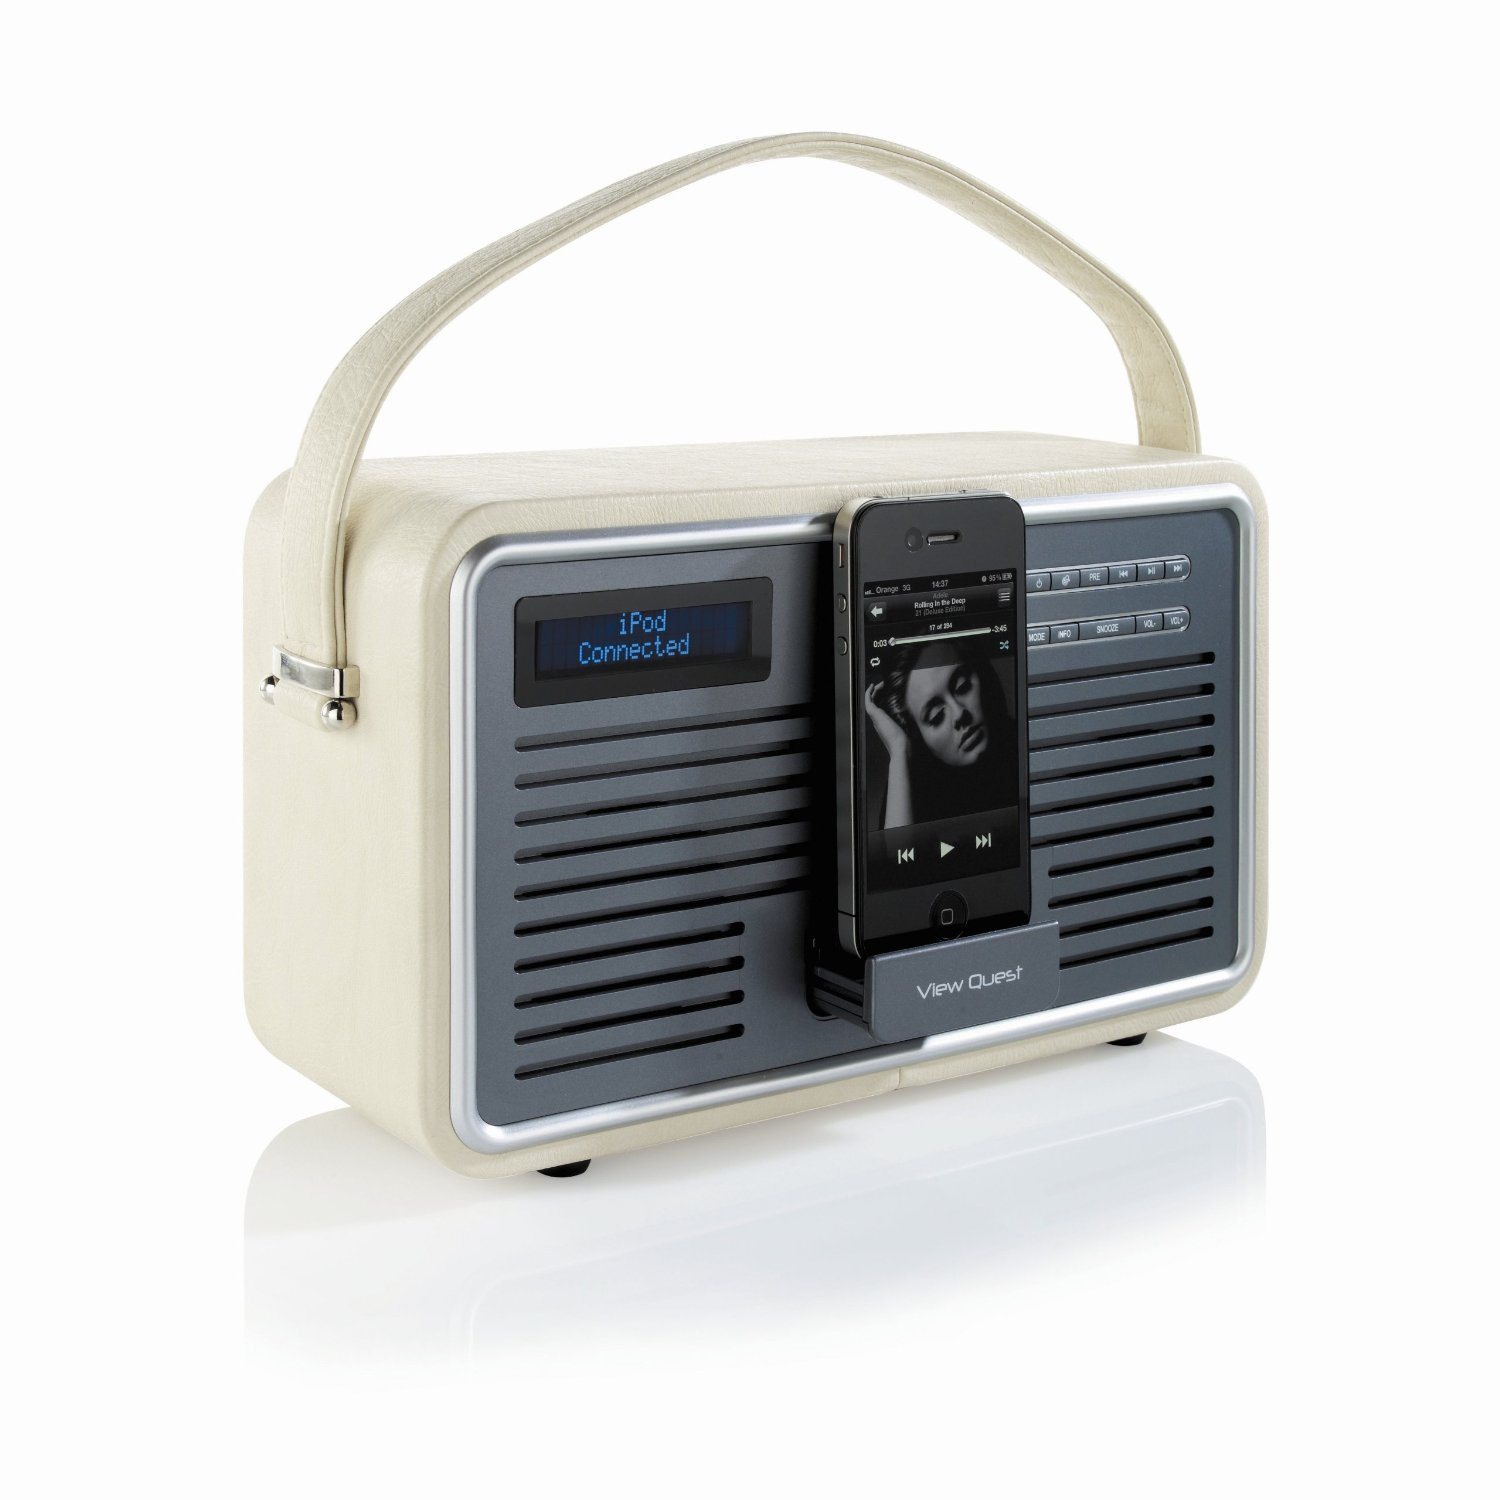 view quest retro portable dab fm radio with ipod iphone. Black Bedroom Furniture Sets. Home Design Ideas